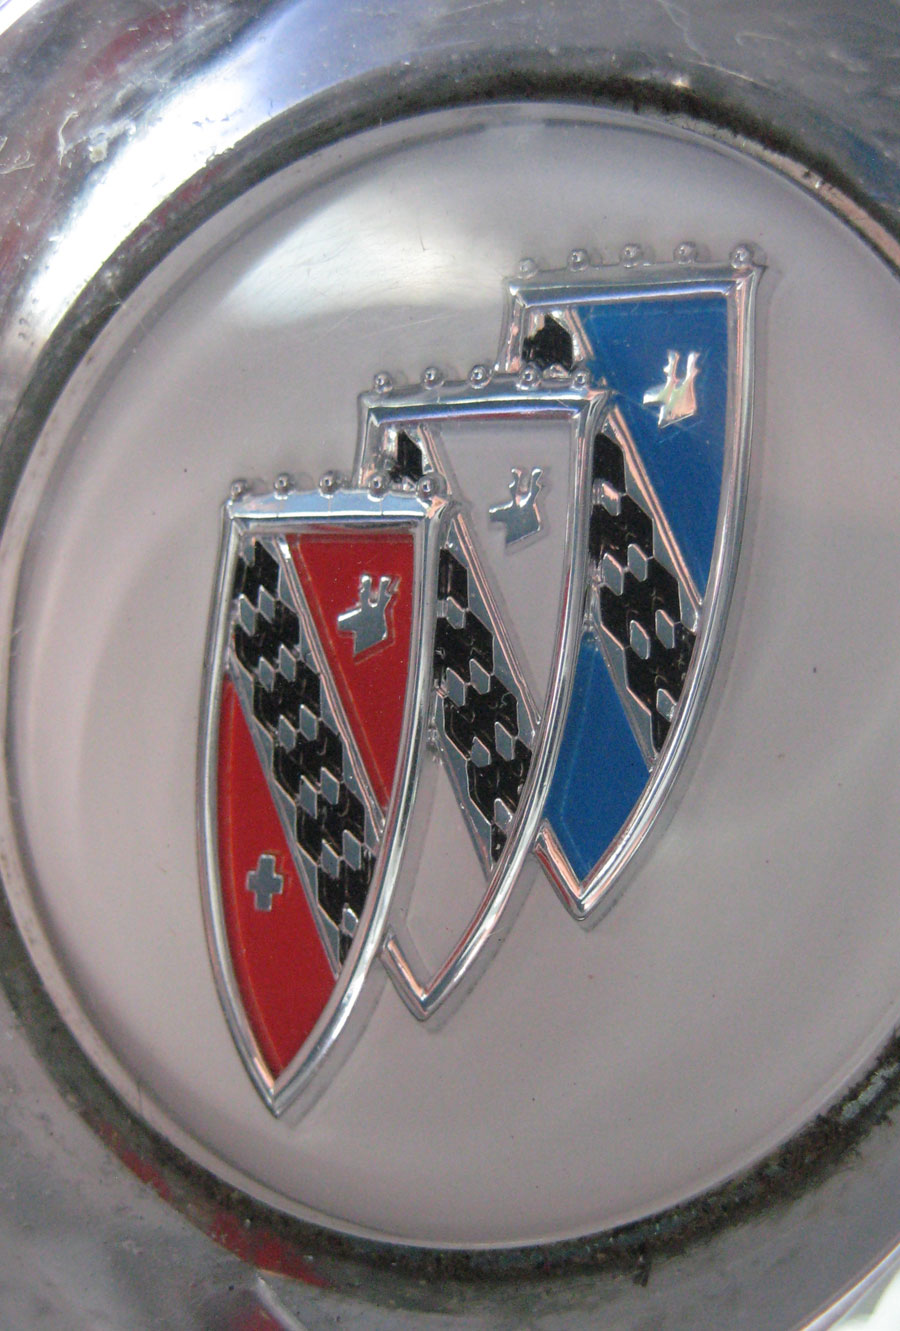 Time For A Major Logo Update At Buick? - Page 2